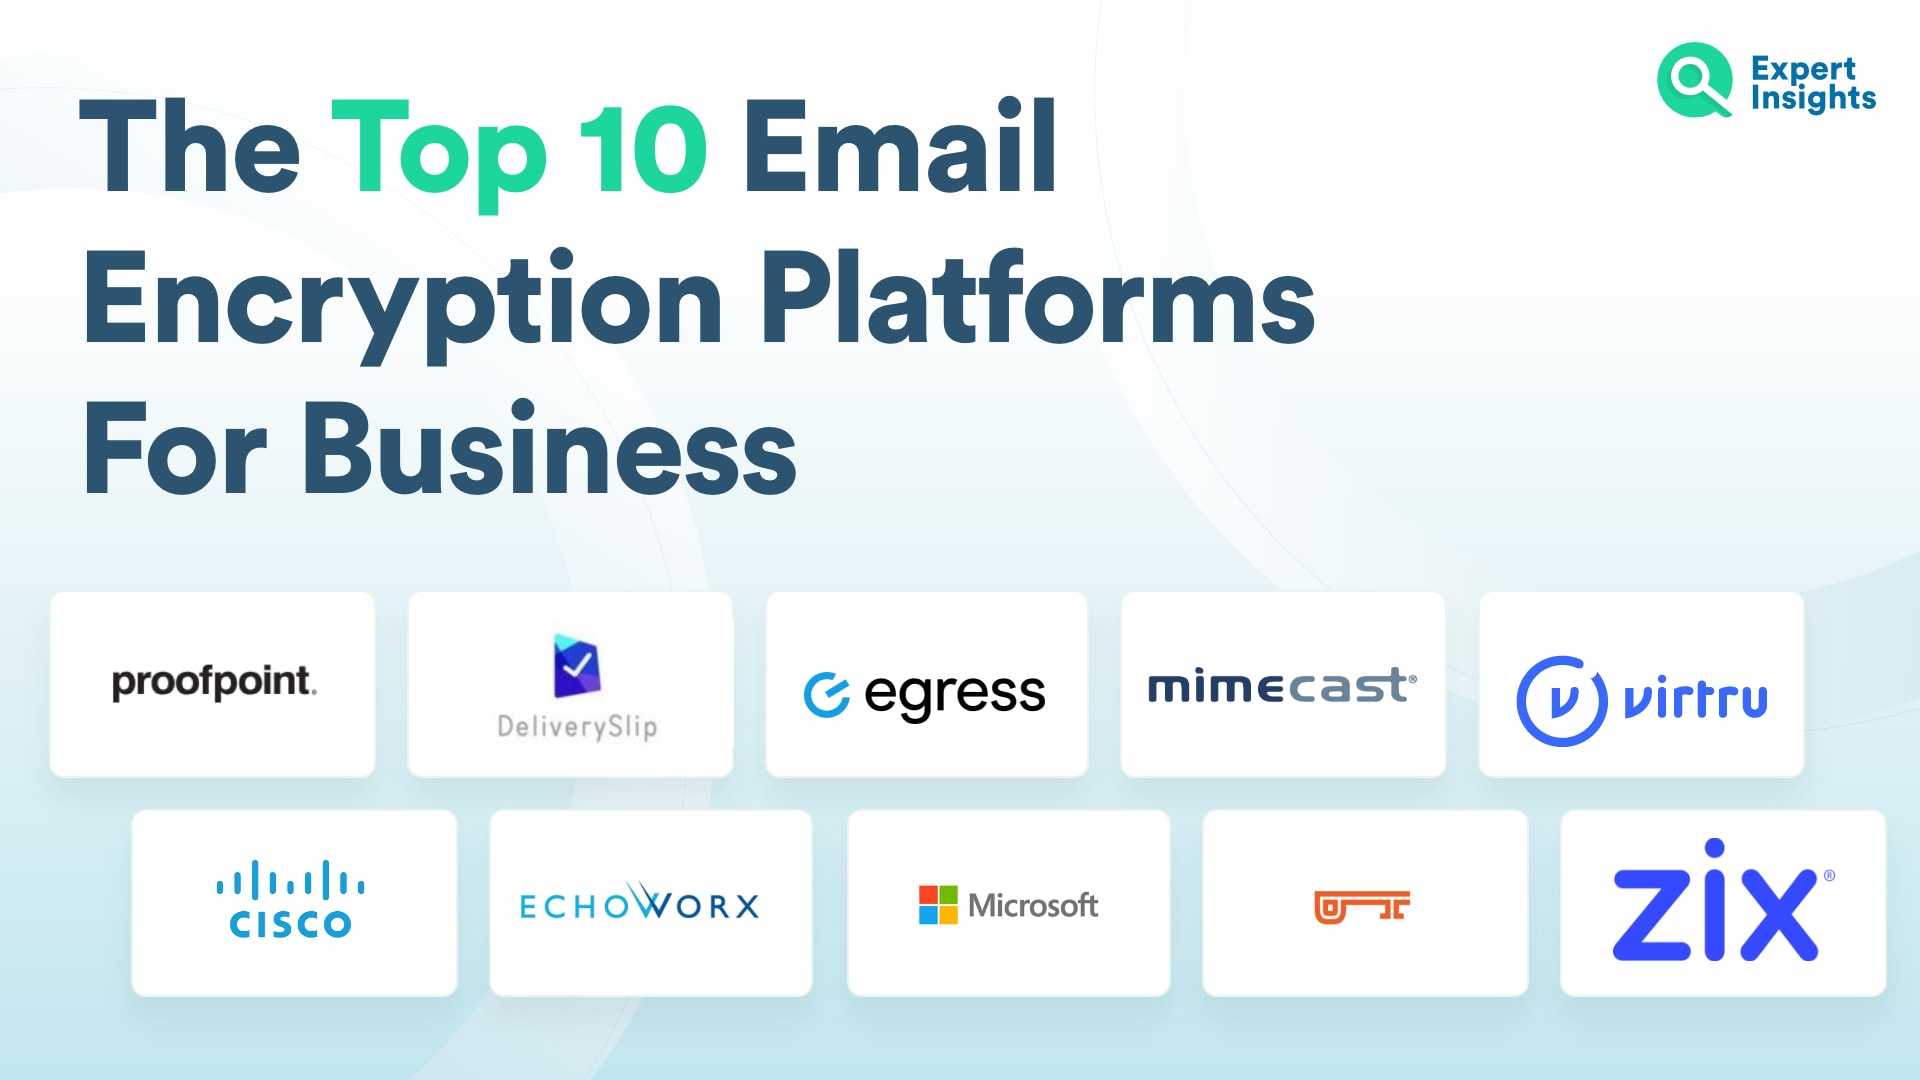 The Top 10 Email Encryption Platforms for Business